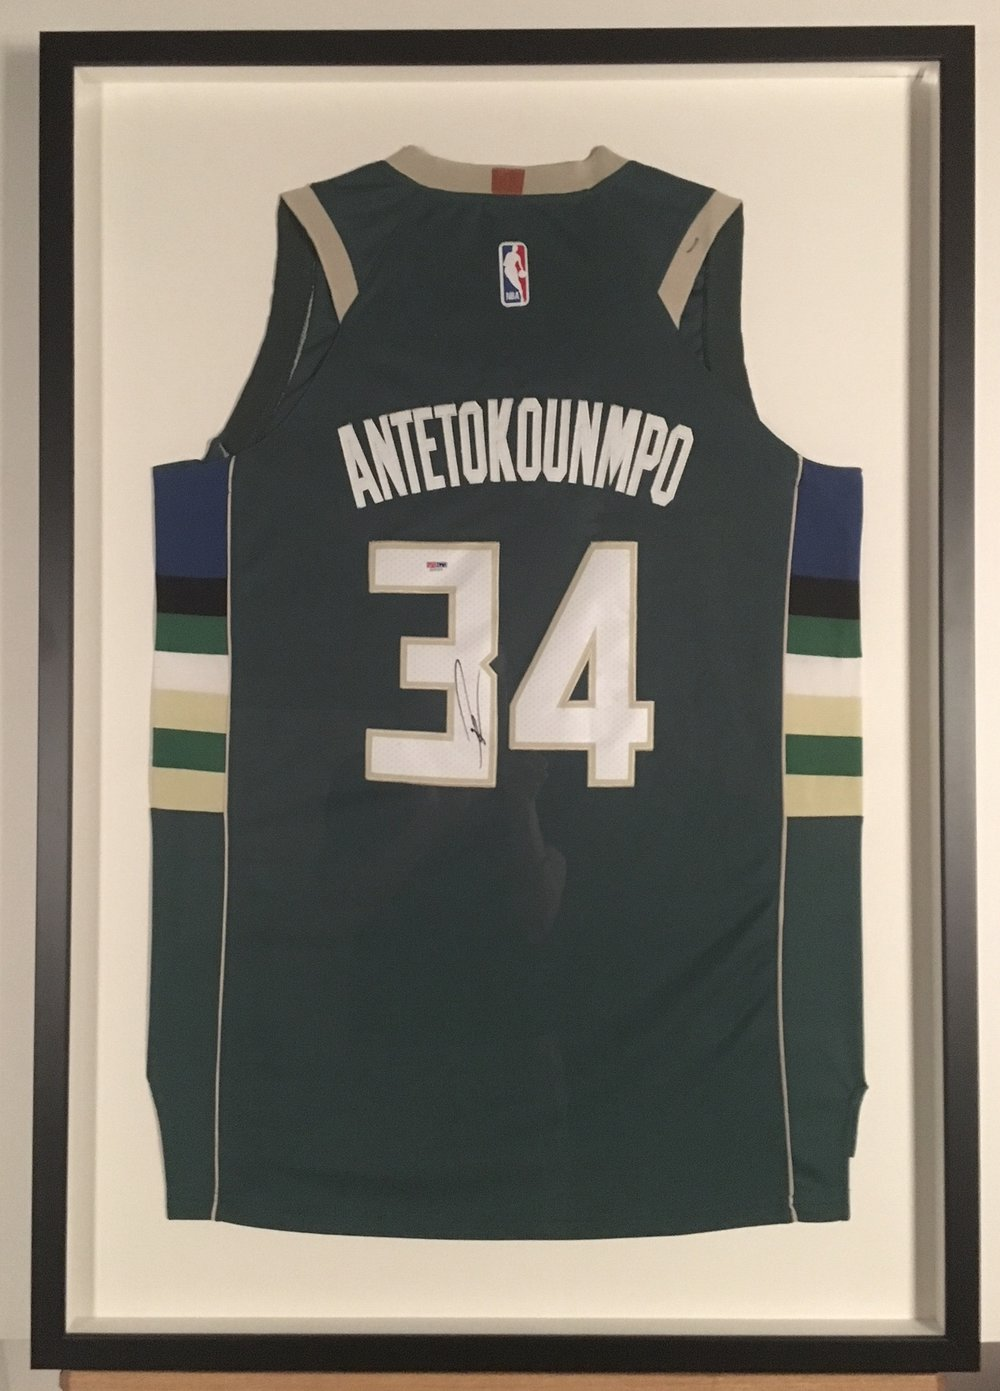 Autographed Milwaukee Buck's Antetokounmpo Jersey stitch mounted and shadowboxed in charcoal on maple.